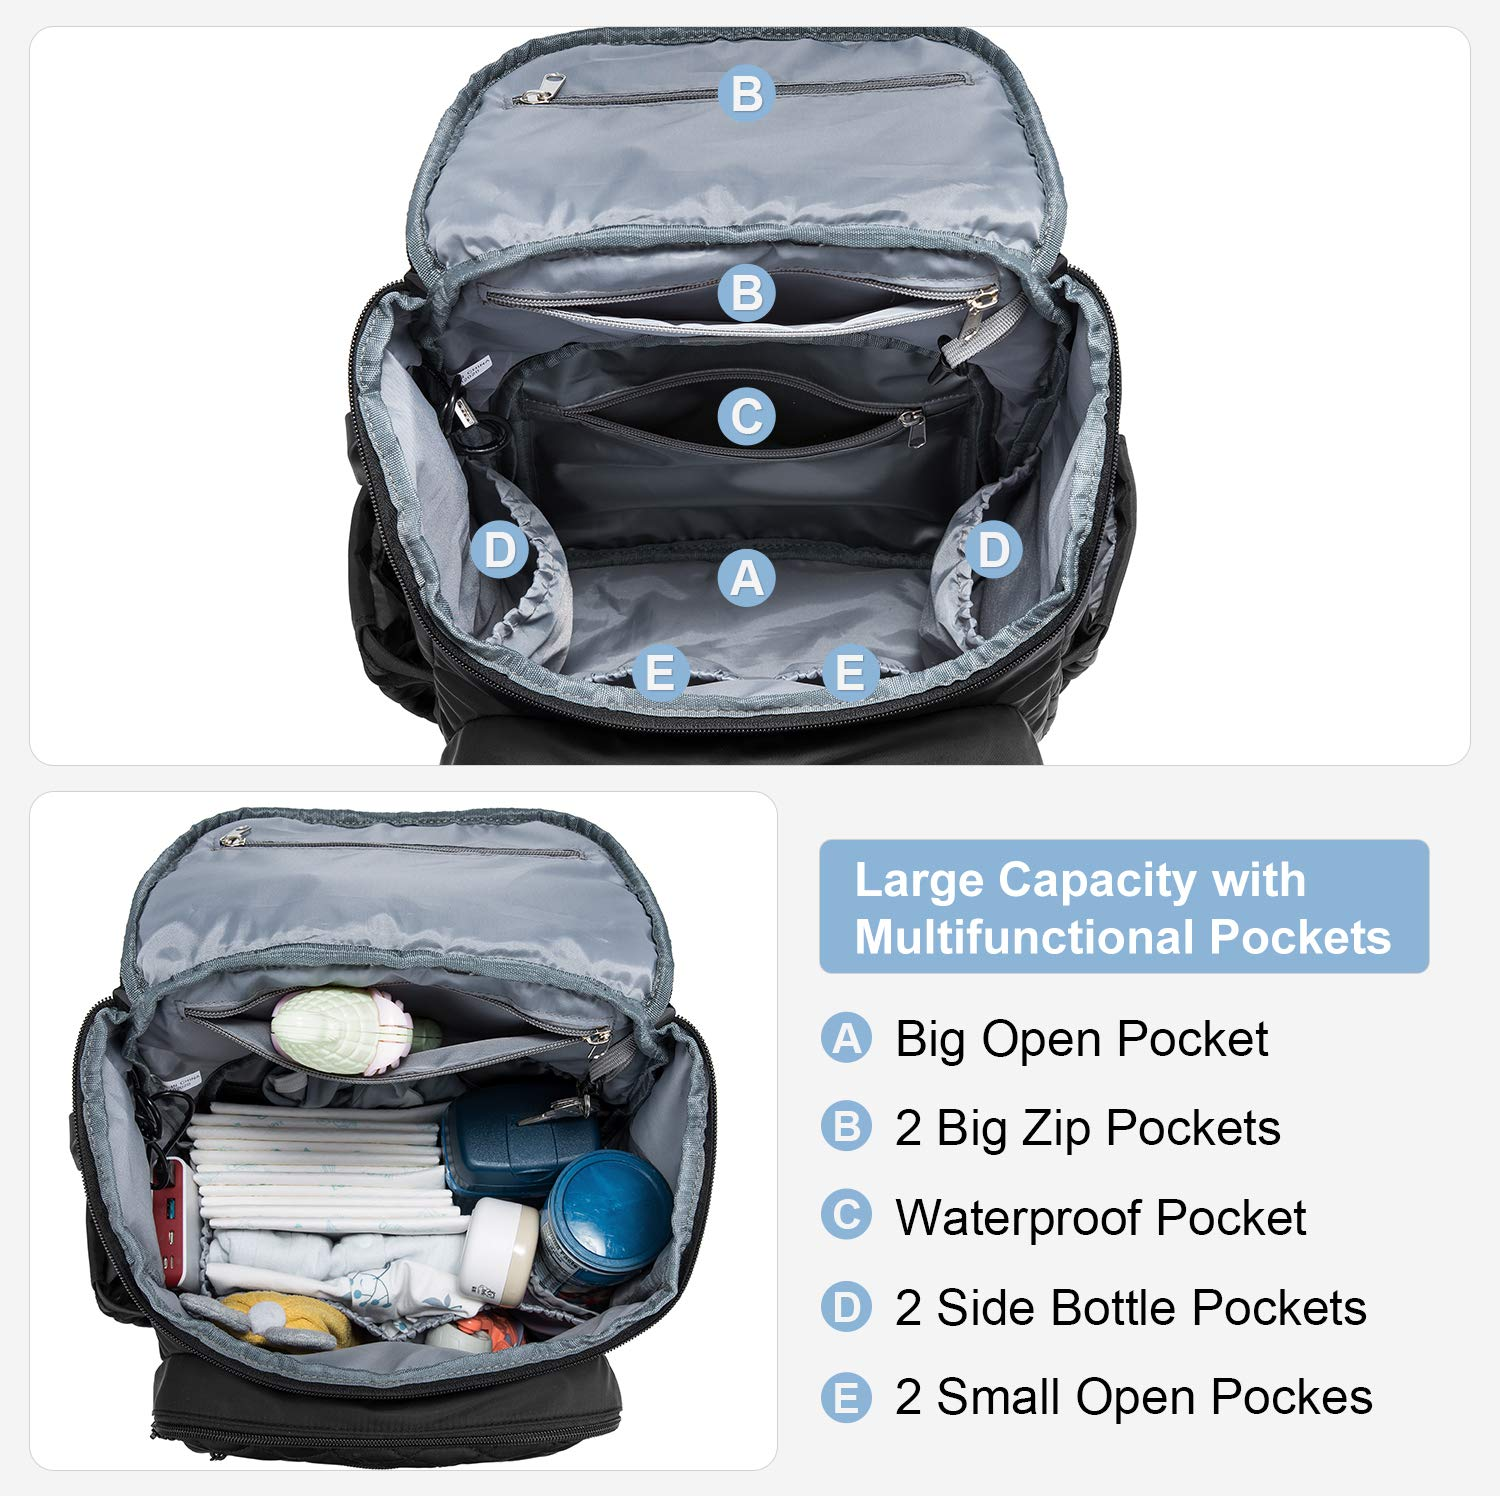 Diaper Bag Backpack, Multifunction Travel Backpack for Boys Grils with Waterproof Portable Changing Pad, Stroller Straps, Thermal Pockets, Unisex and Stylish, Black